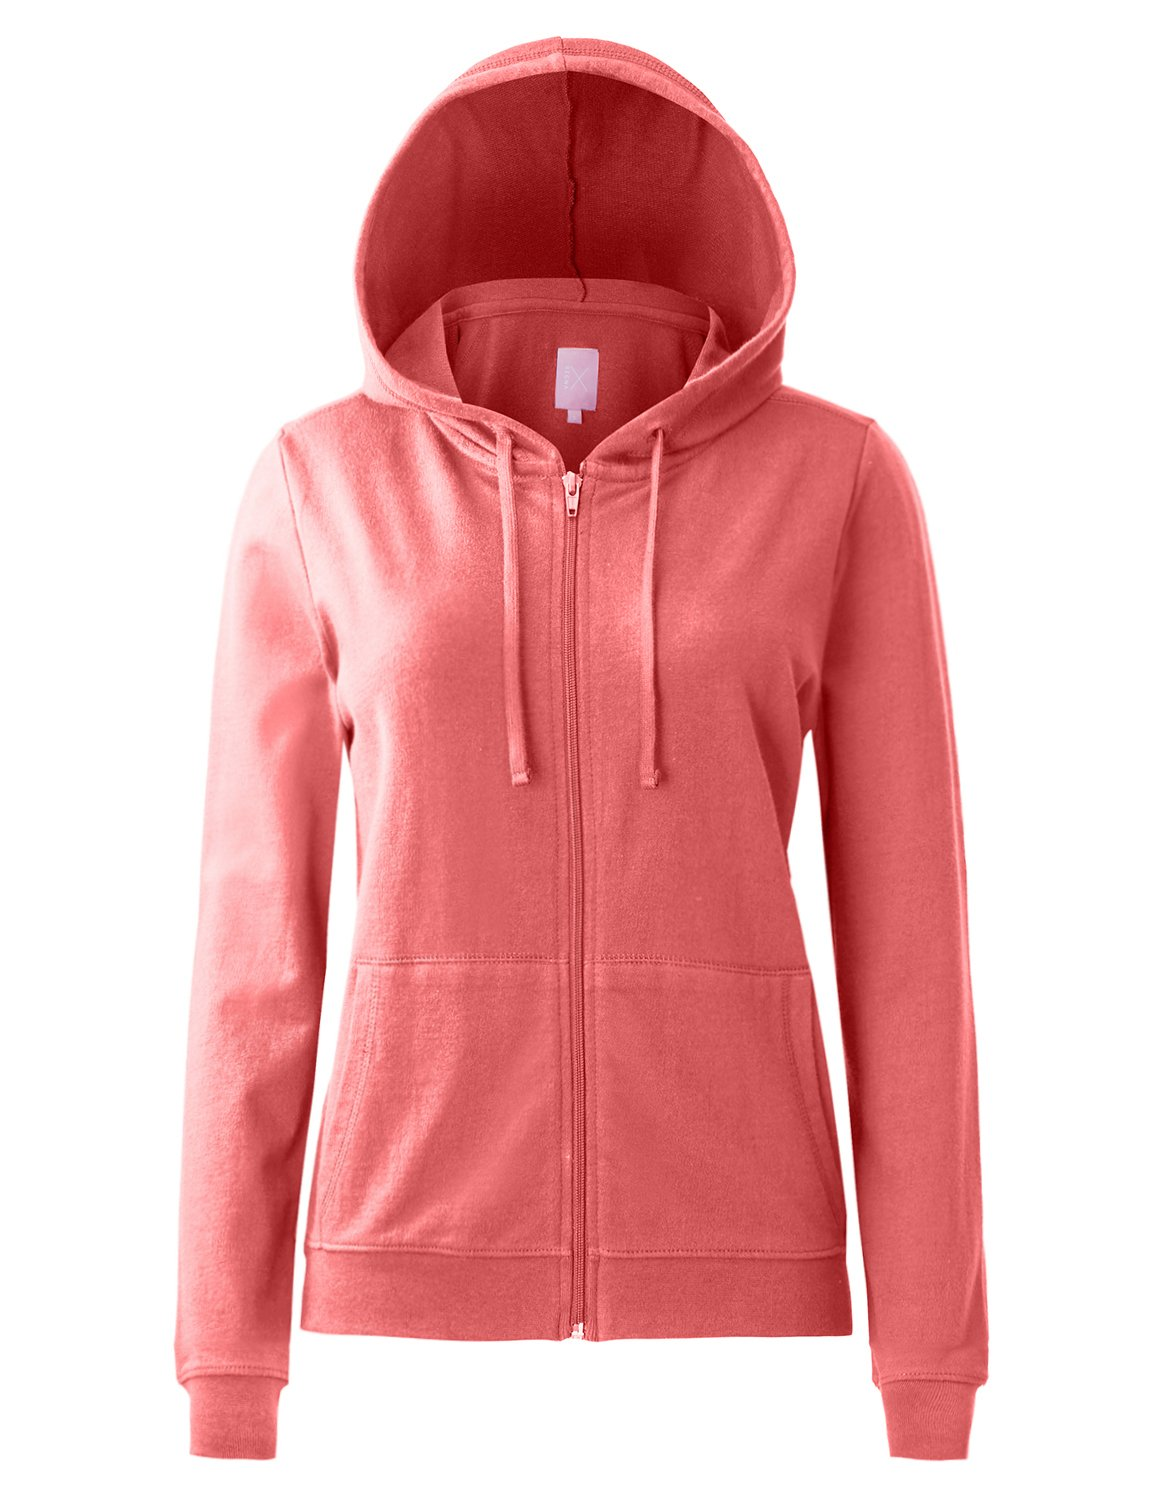 Regna X Women's Round Neck Long Sleeve Full Zip-up Hoodie with Drawstrings (16, S-3X) 8AJCW17103_P